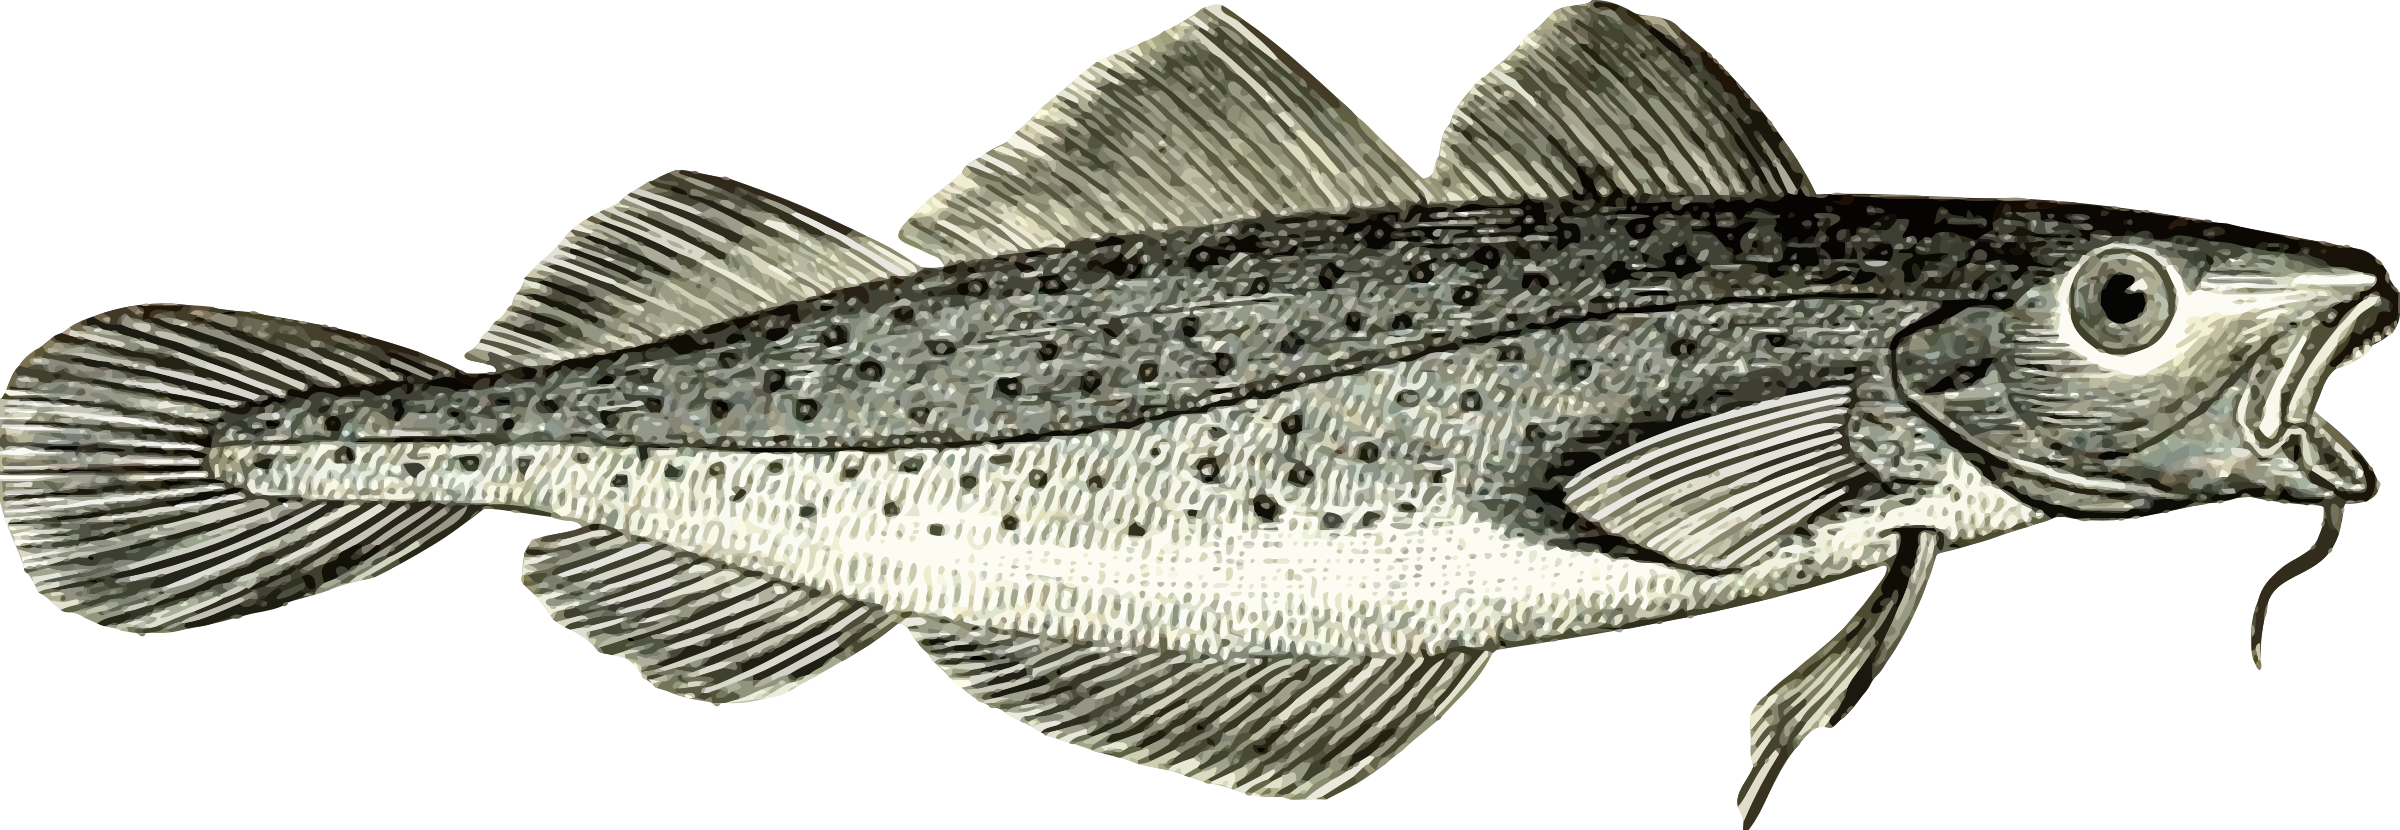 Cod fish vector clipart image.